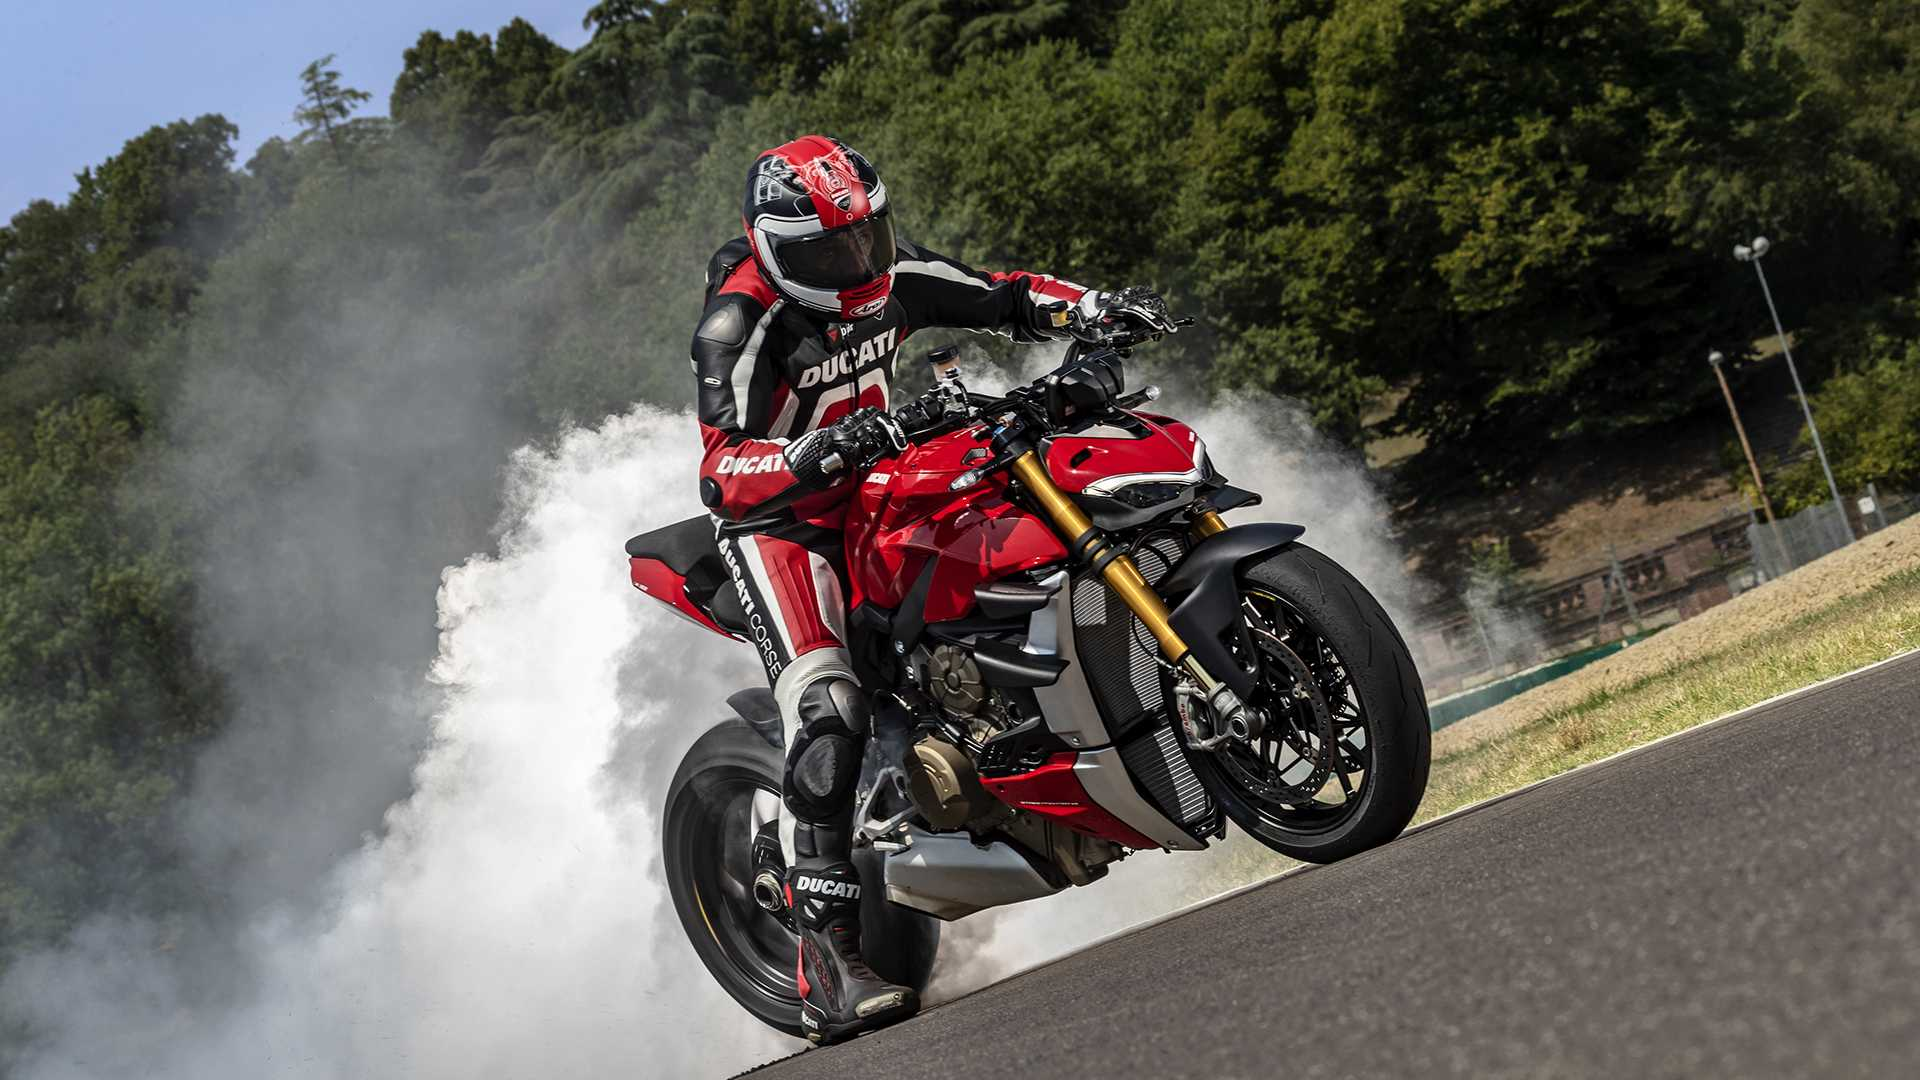 Ducati Streetfighter V4 Declared Most Beautiful Bike At EICMA 2019